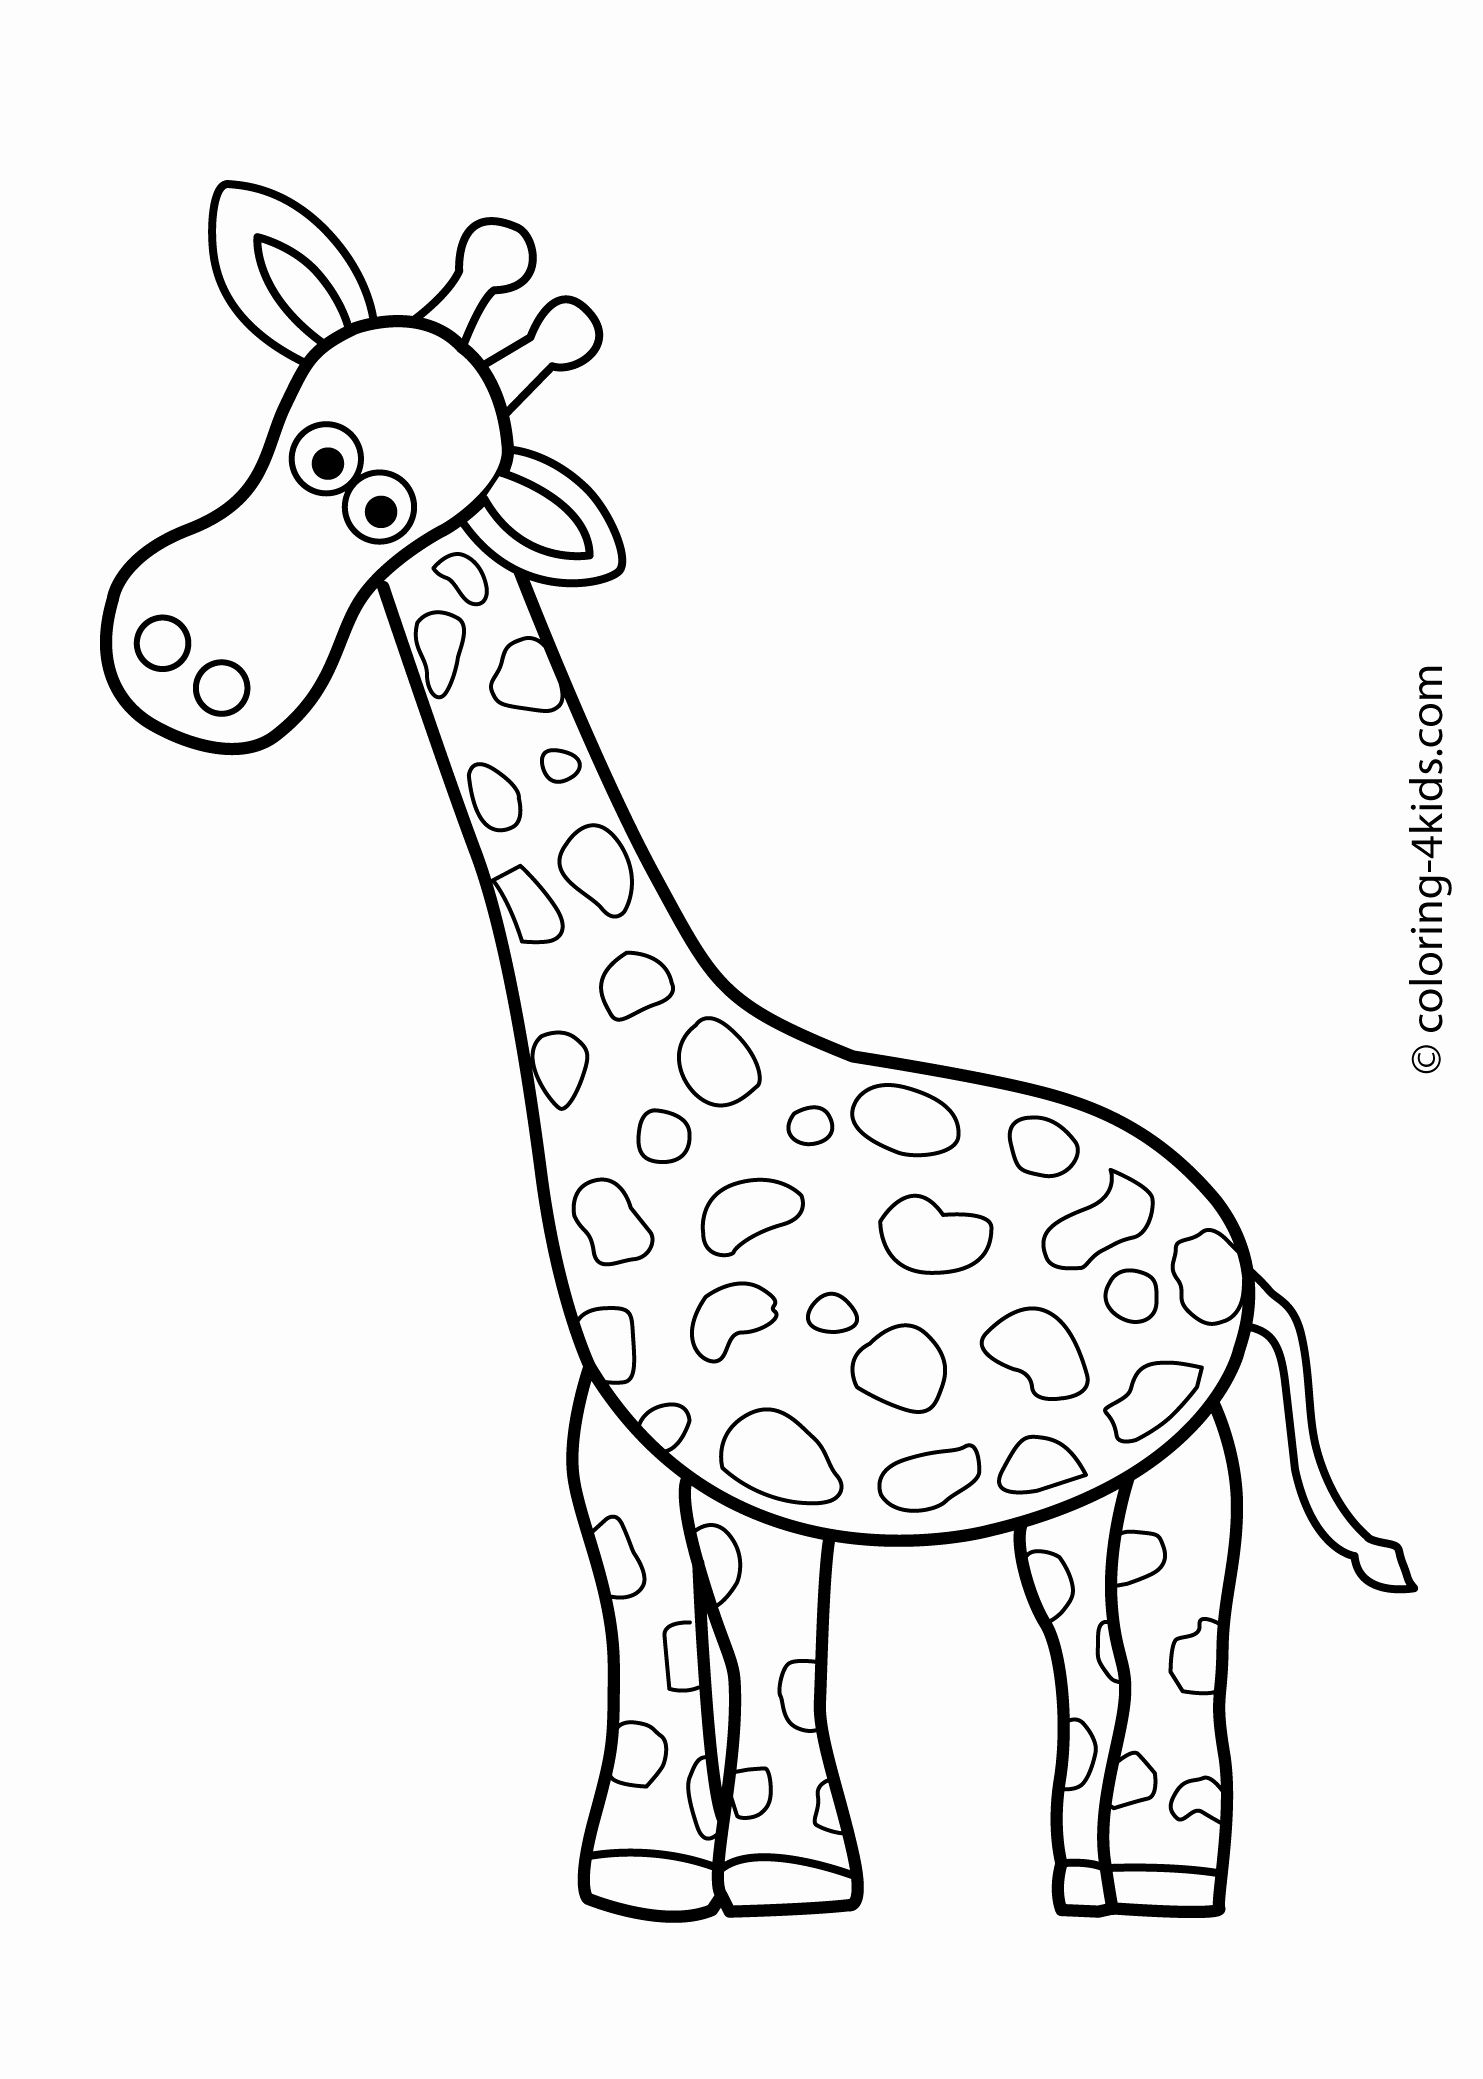 Free Coloring Zoo Animals Fresh Animals Coloring Pages For Kids Giraffe Coloring Pages F In 2020 Zoo Animal Coloring Pages Giraffe Coloring Pages Animal Coloring Books